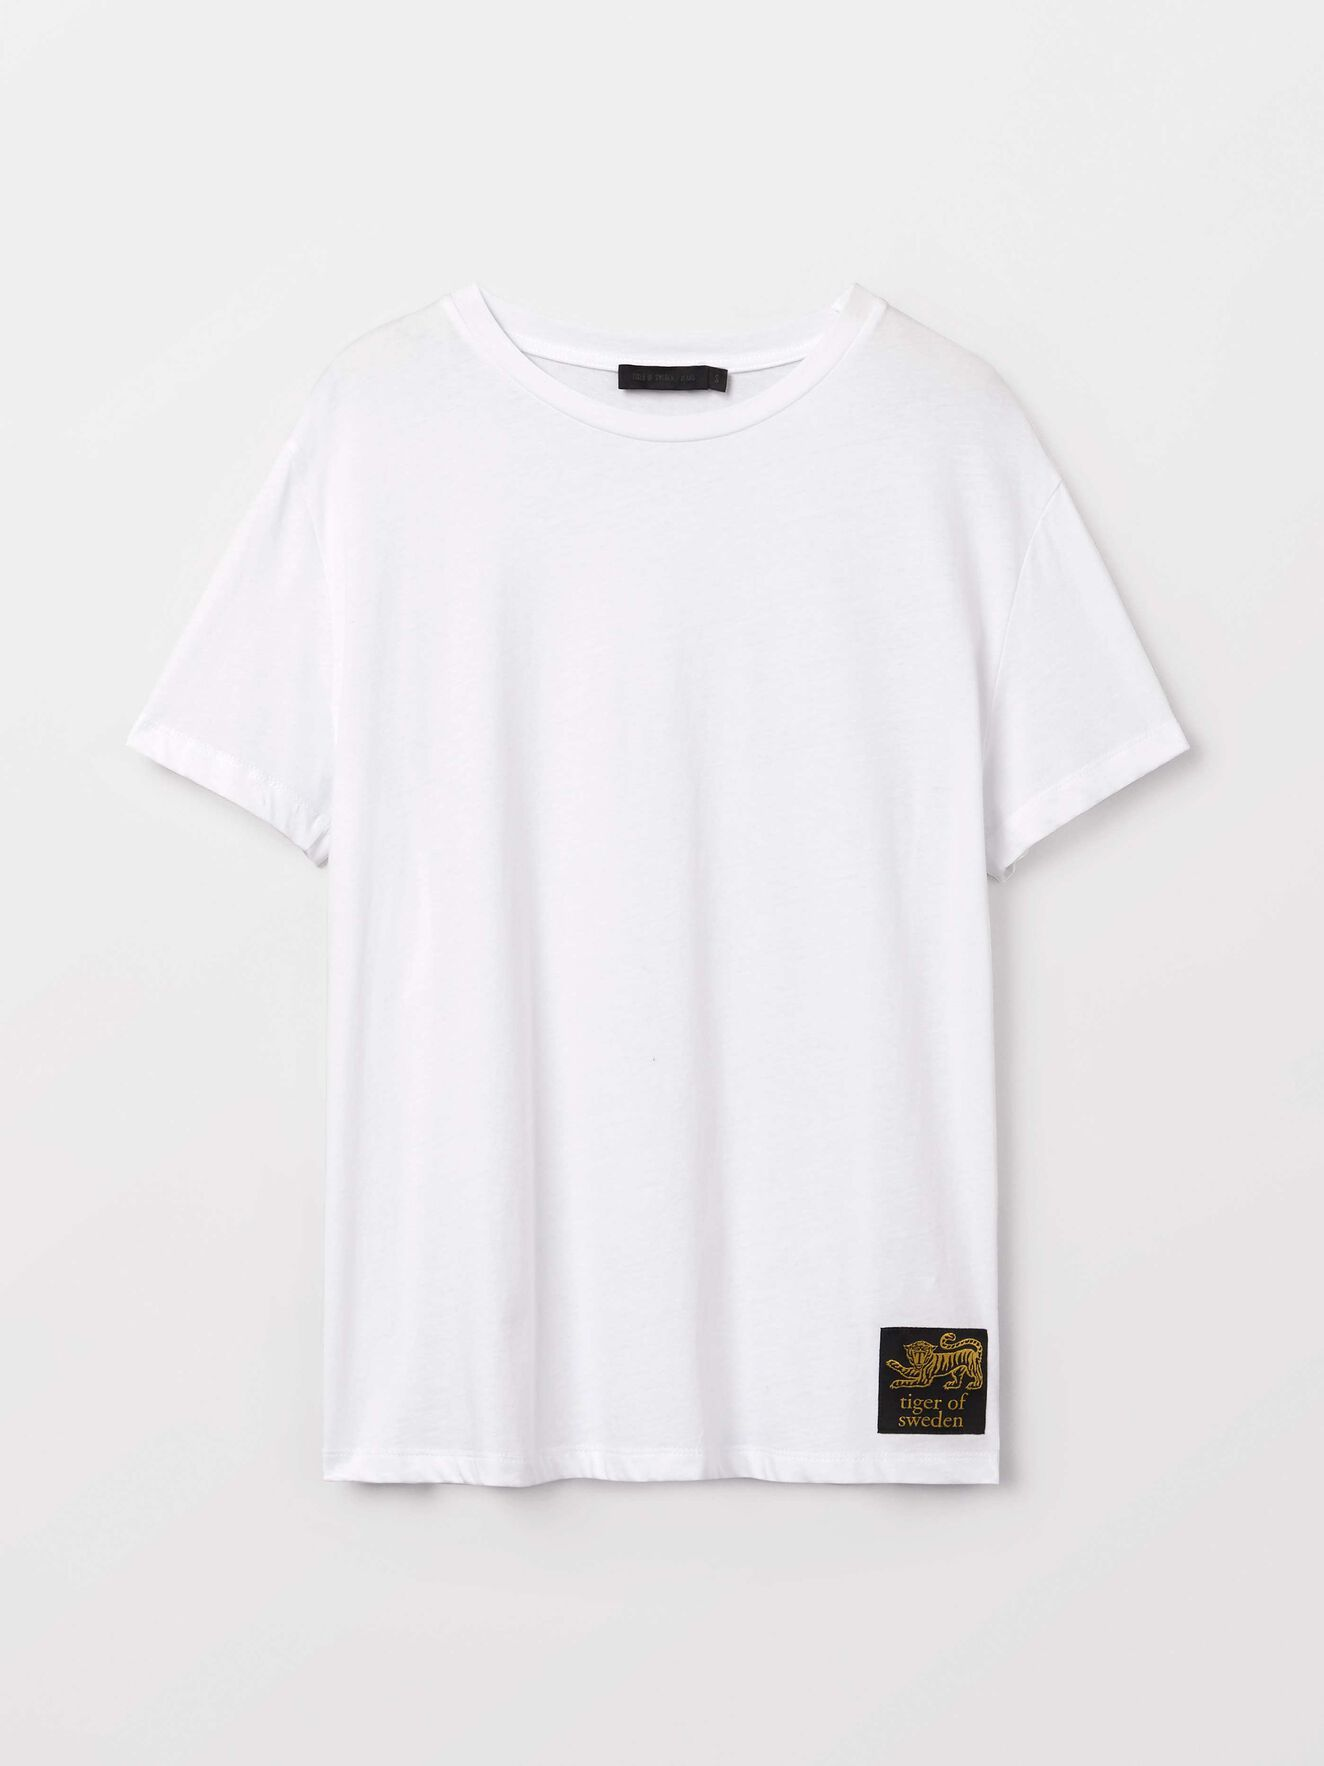 Dawn T-Shirt   in White from Tiger of Sweden